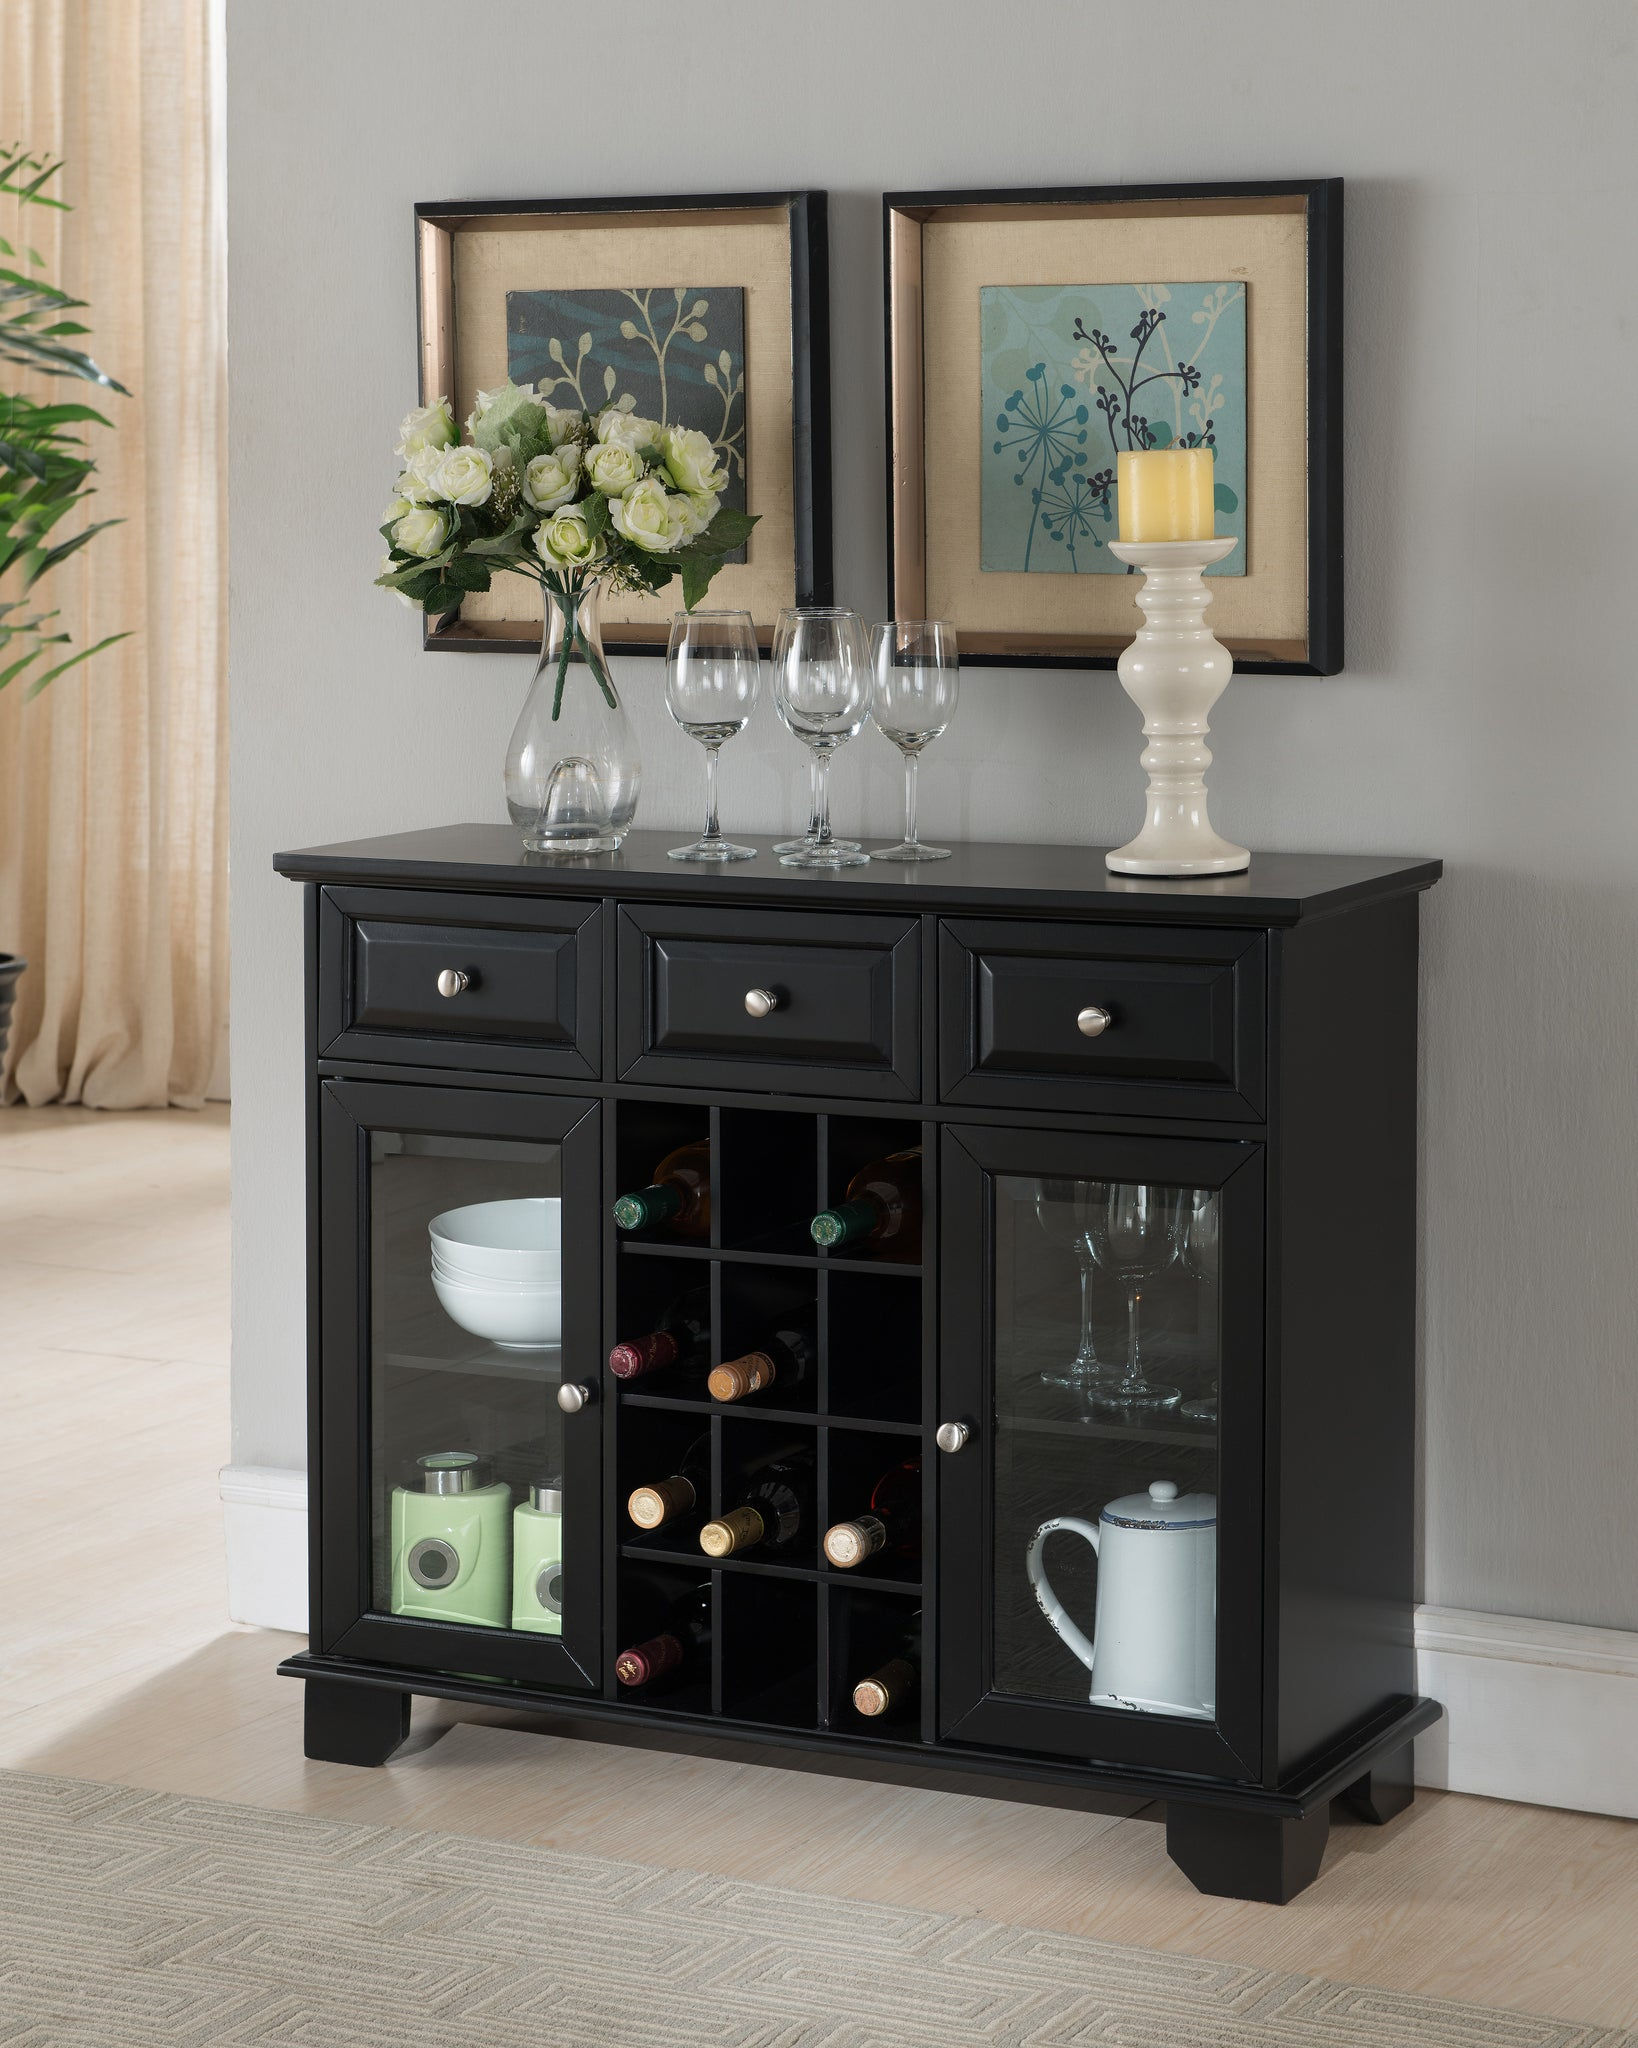 Alan Black Wood Contemporary Wine Rack Breakfront Sideboard Display Console  Table With Glass Storage Doors ...